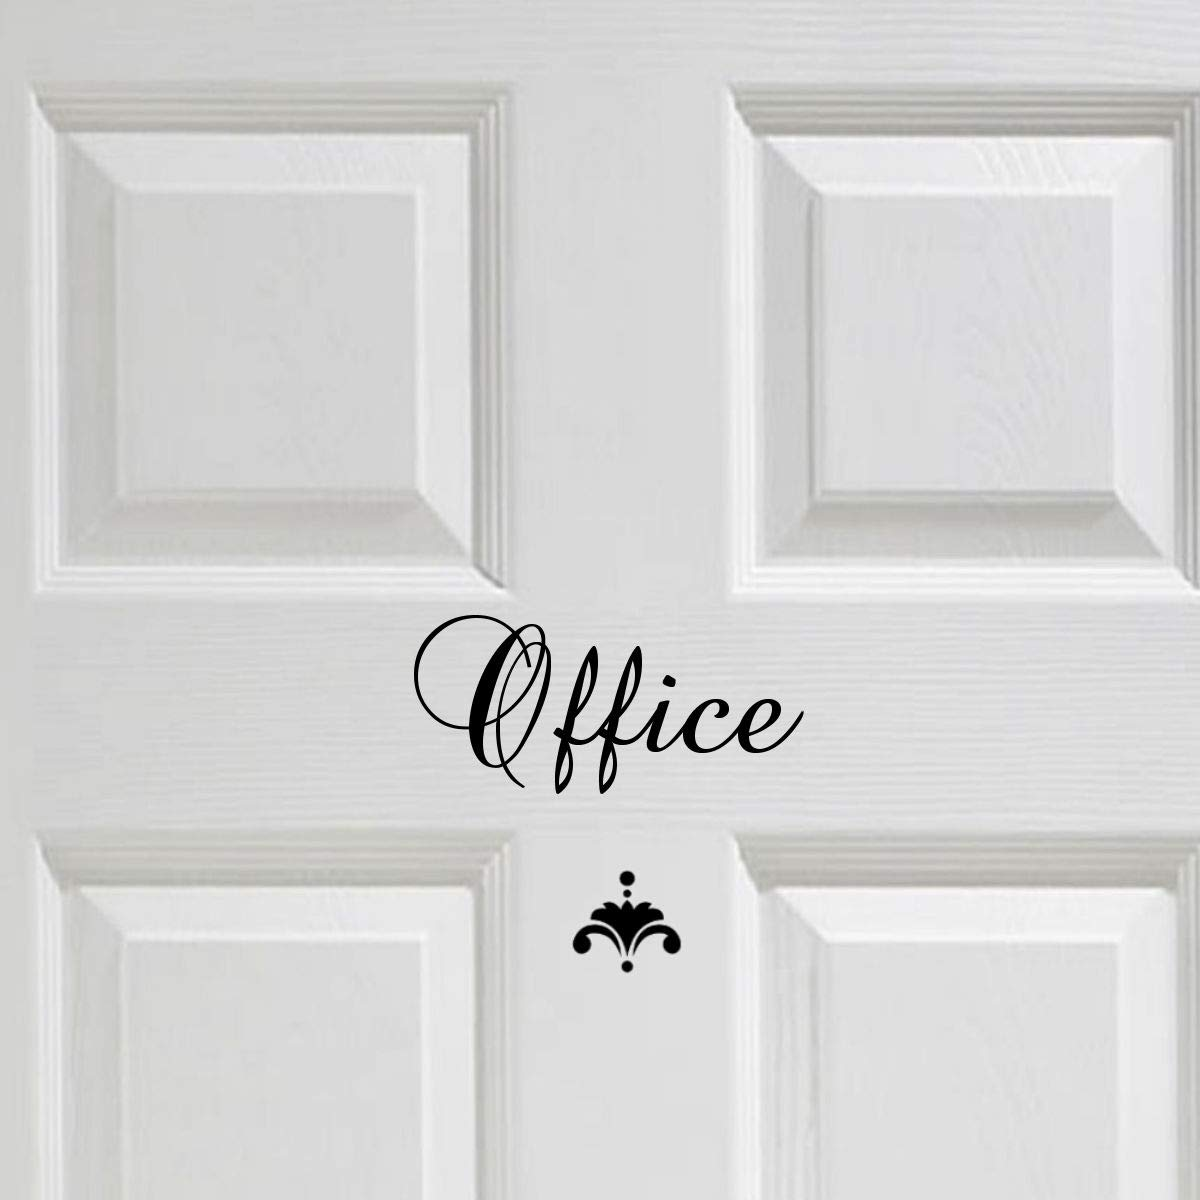 Black Office Door or Wall Decal Sign with Accent Vinyl Wall Decal